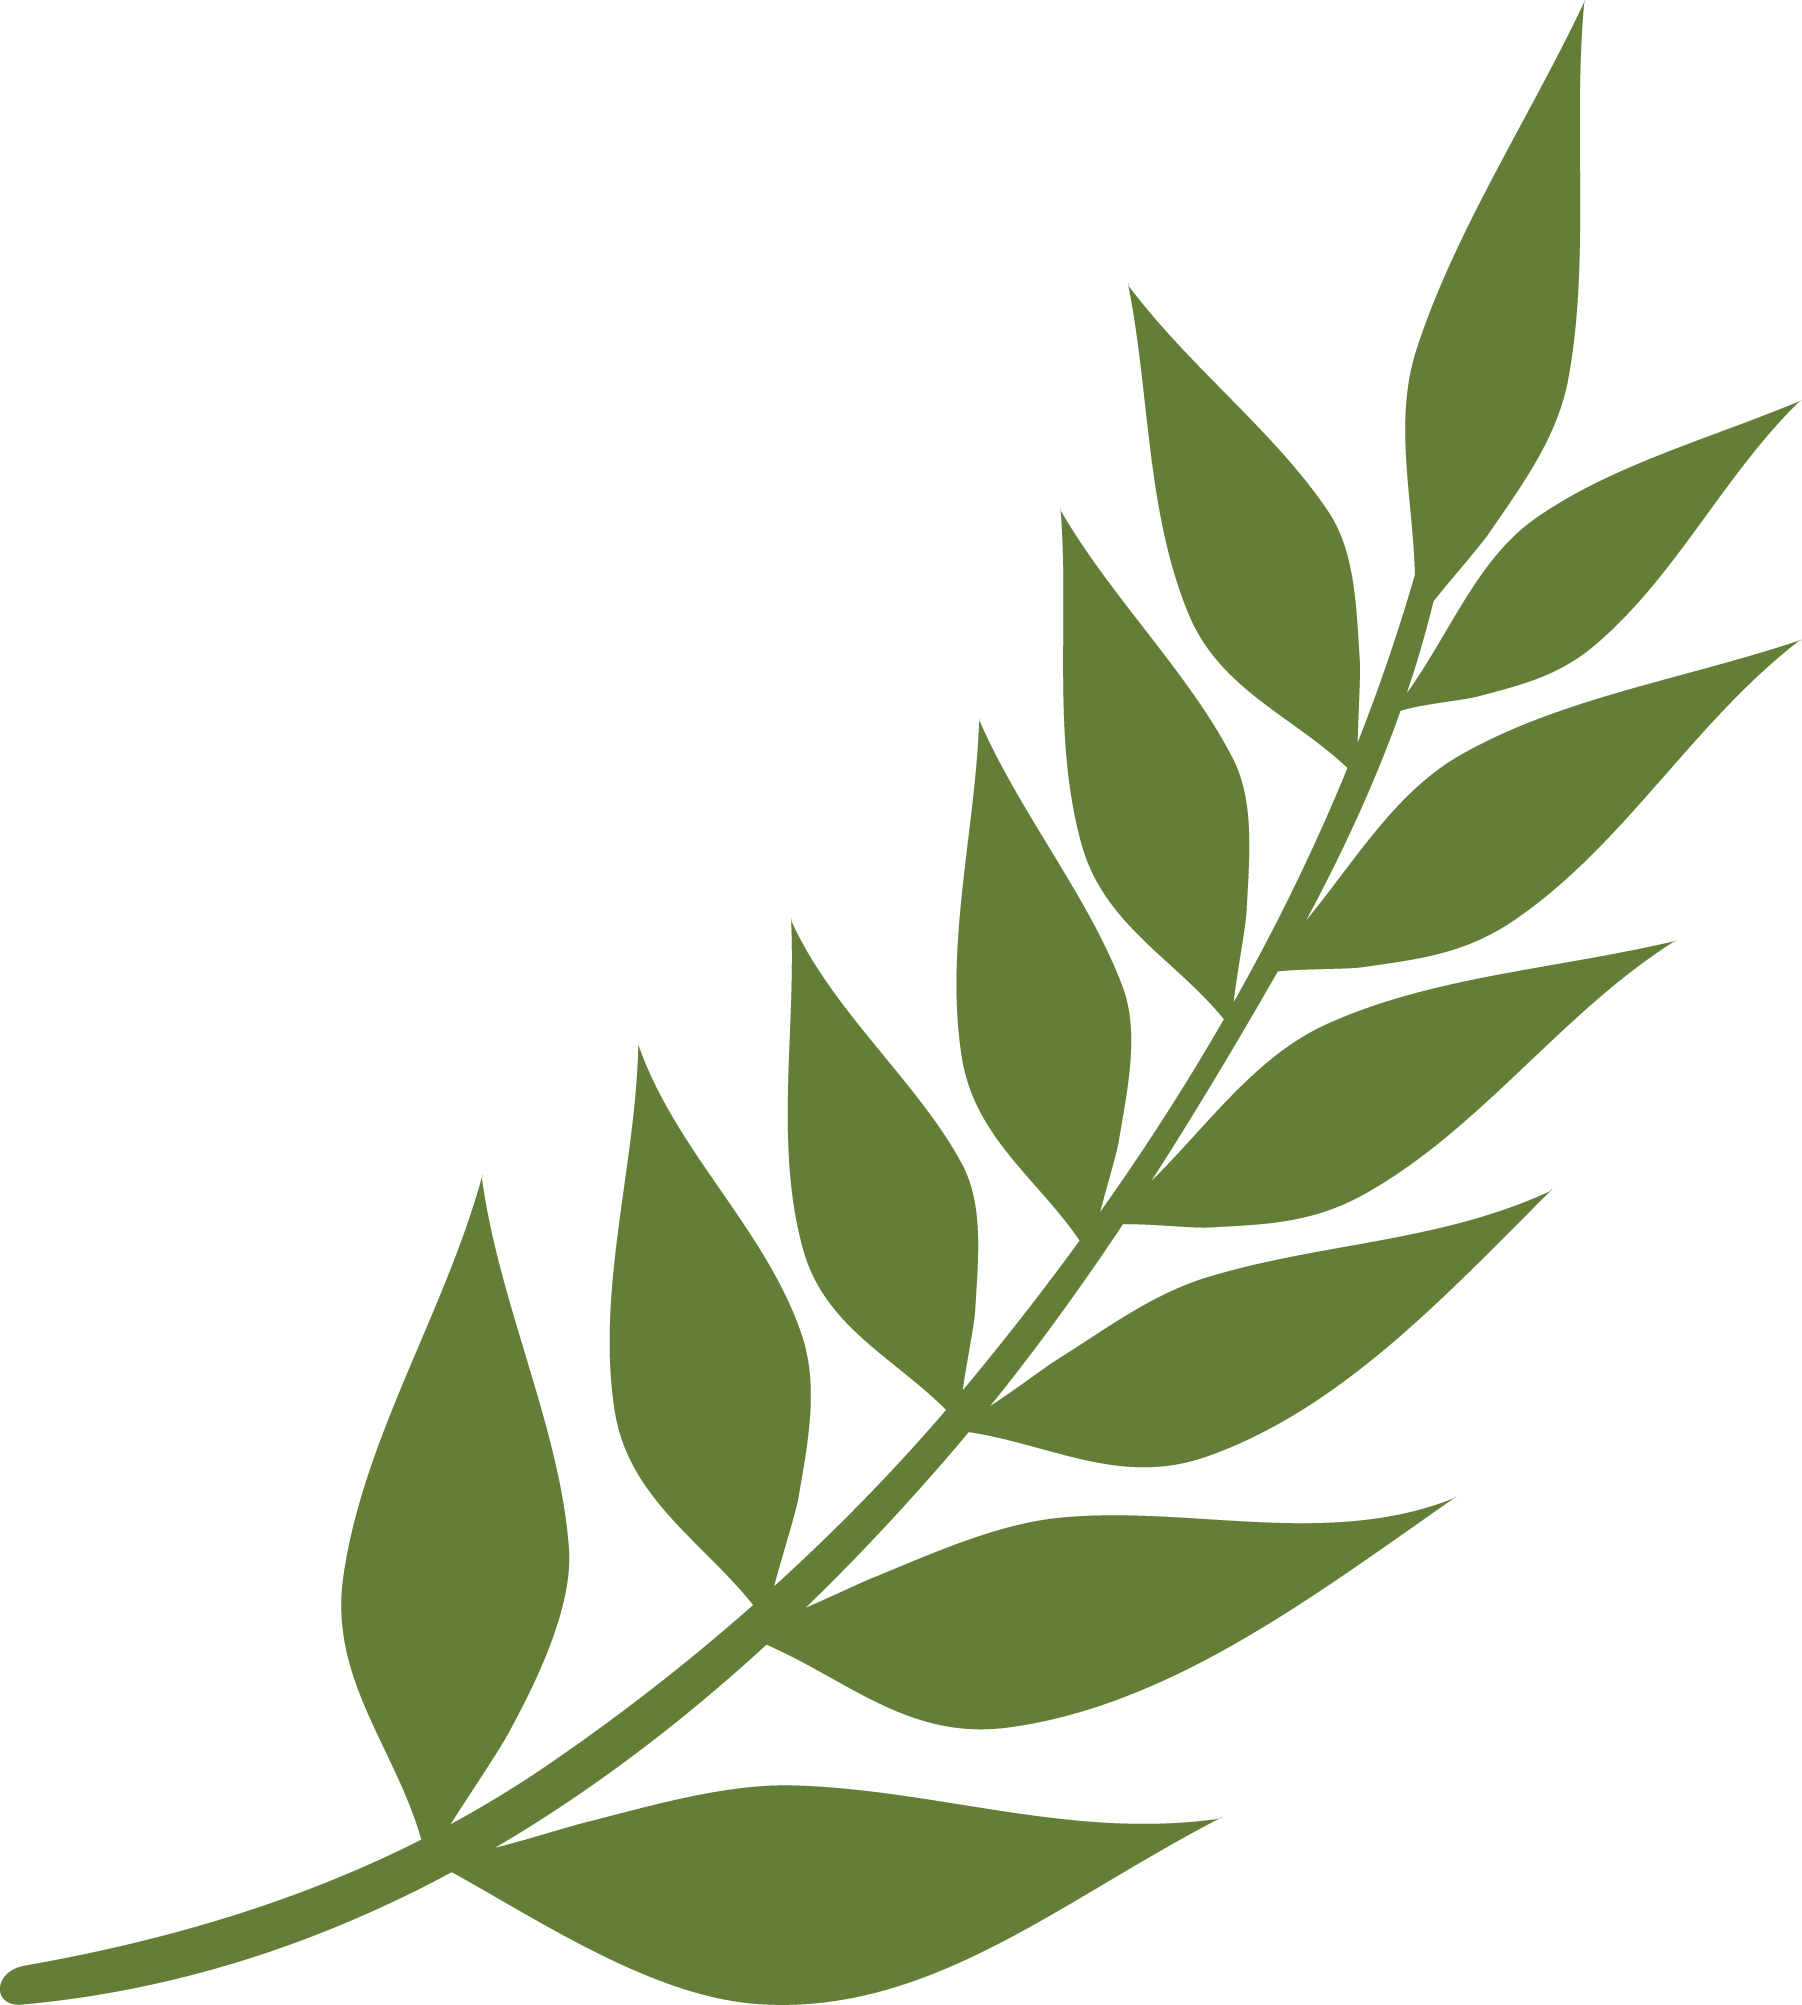 My Favorite Fall Fern SVG Cut File